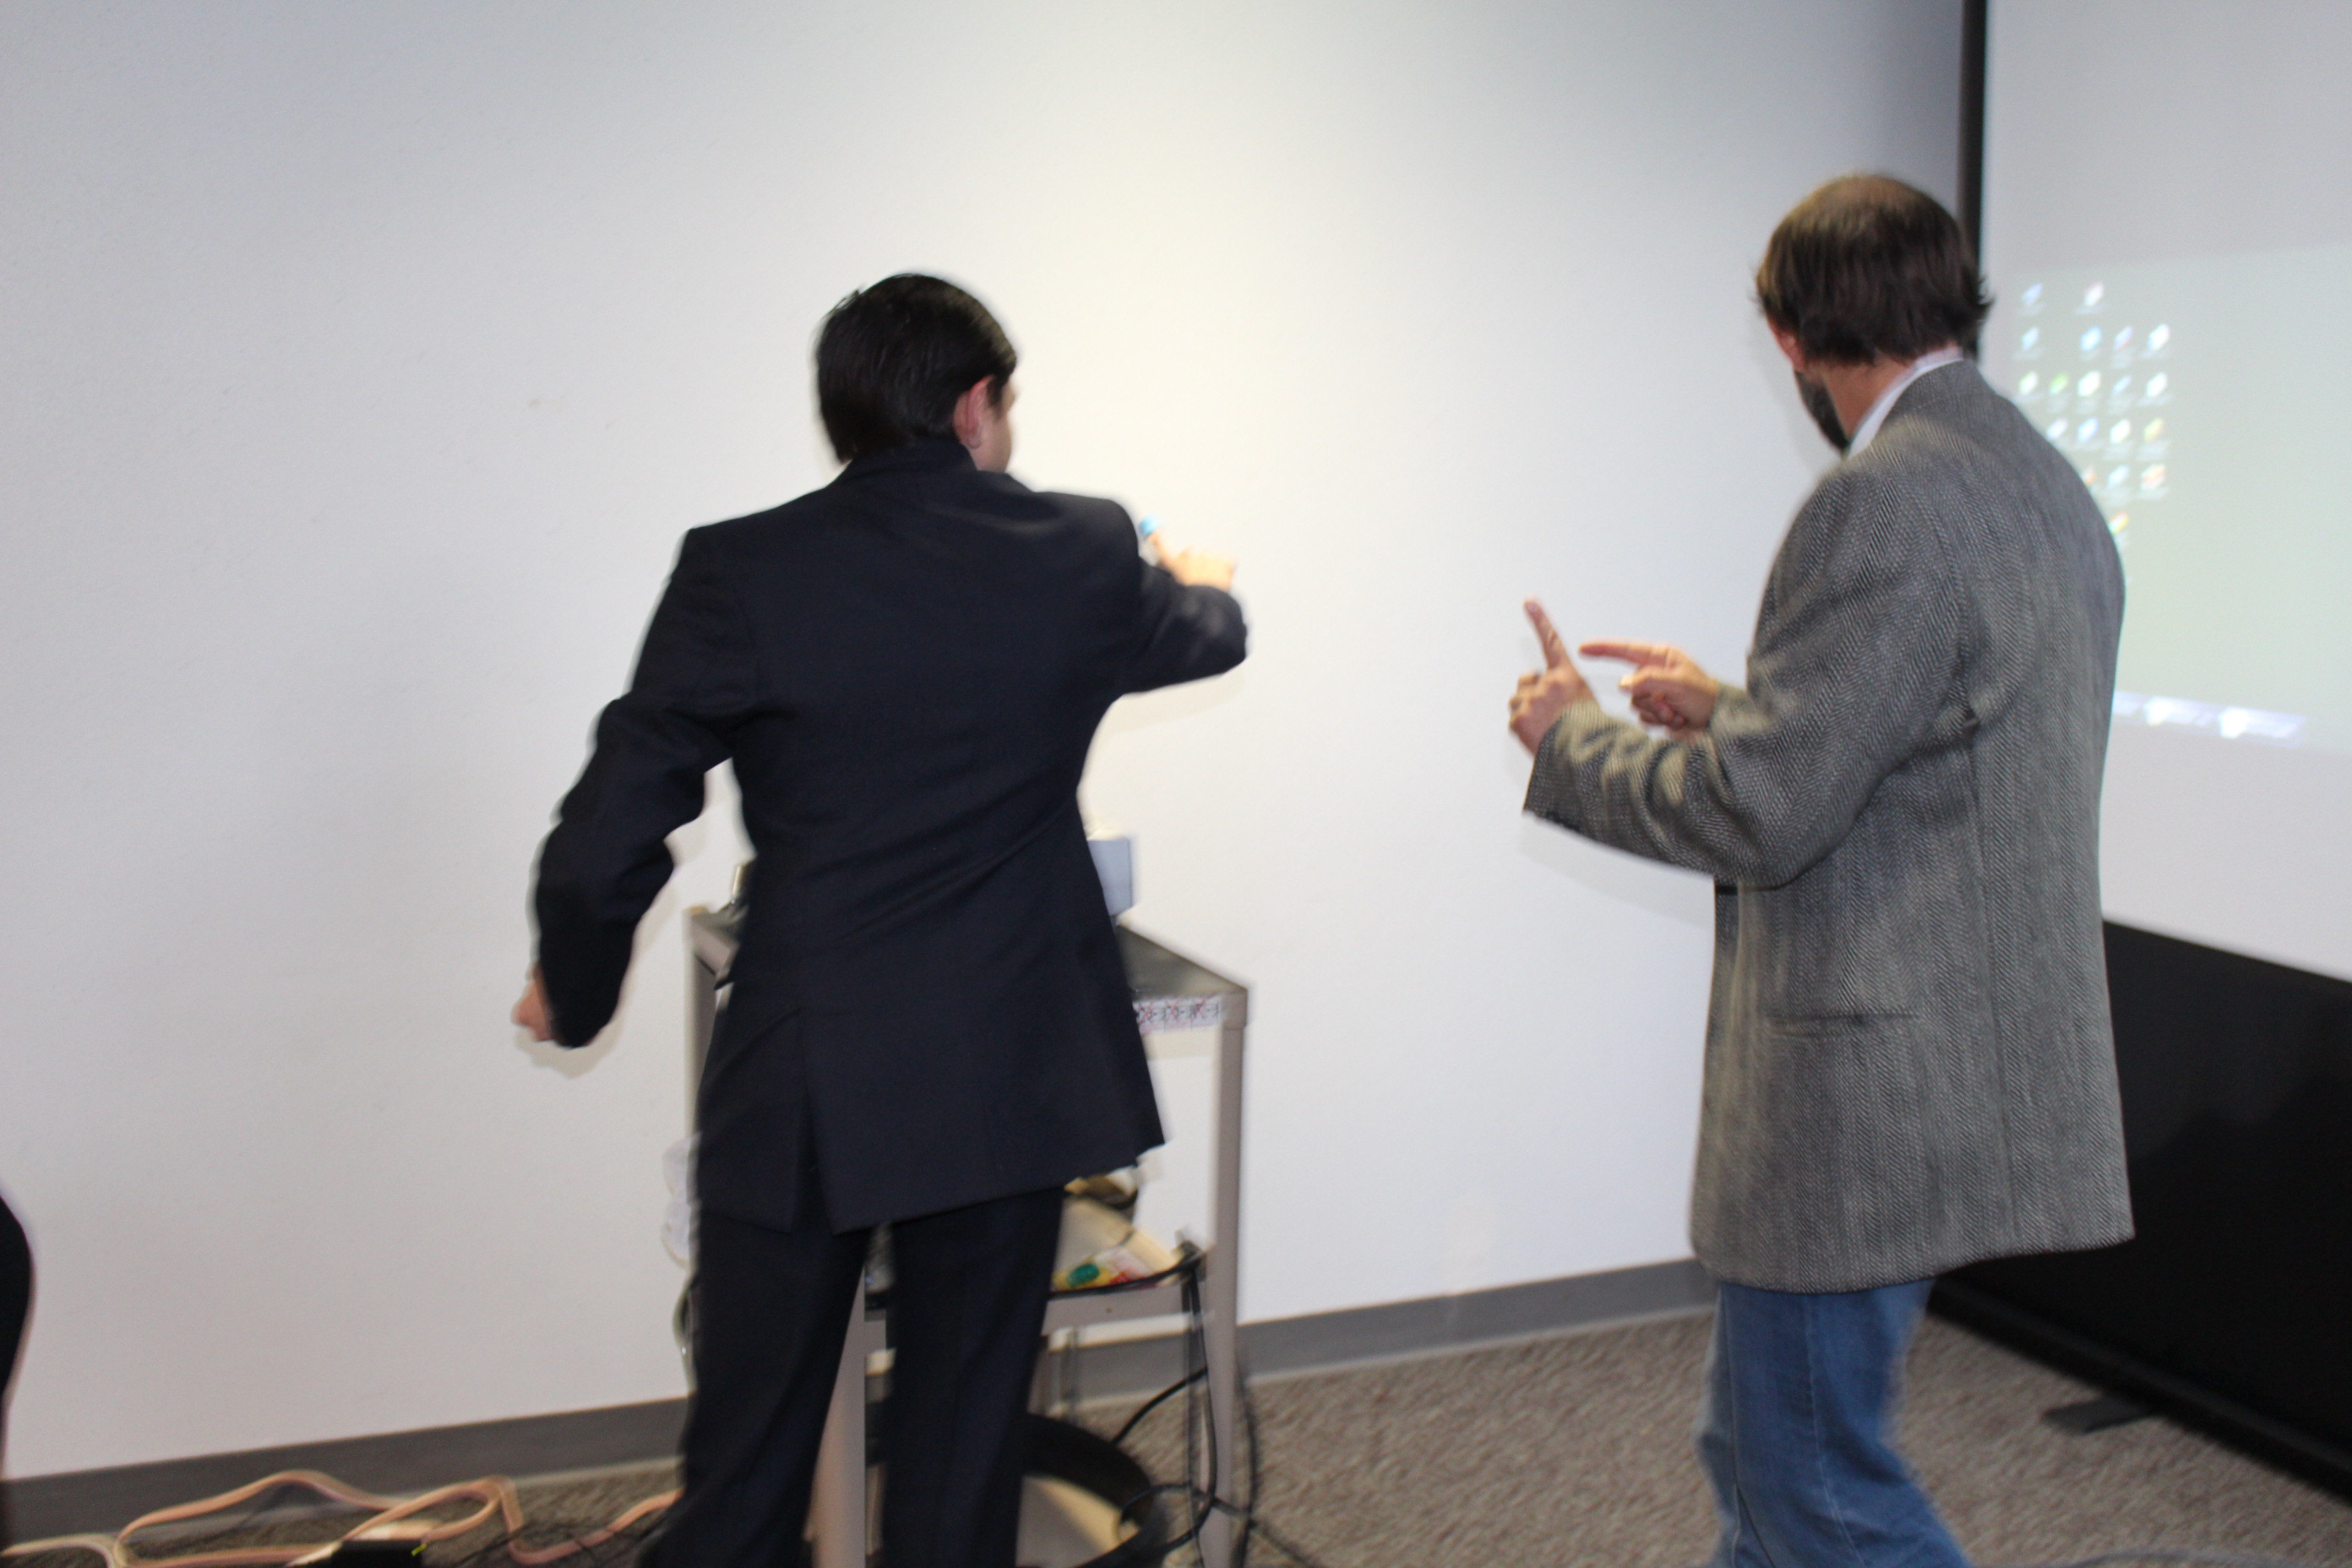 Gesture Recognition Technology Demo